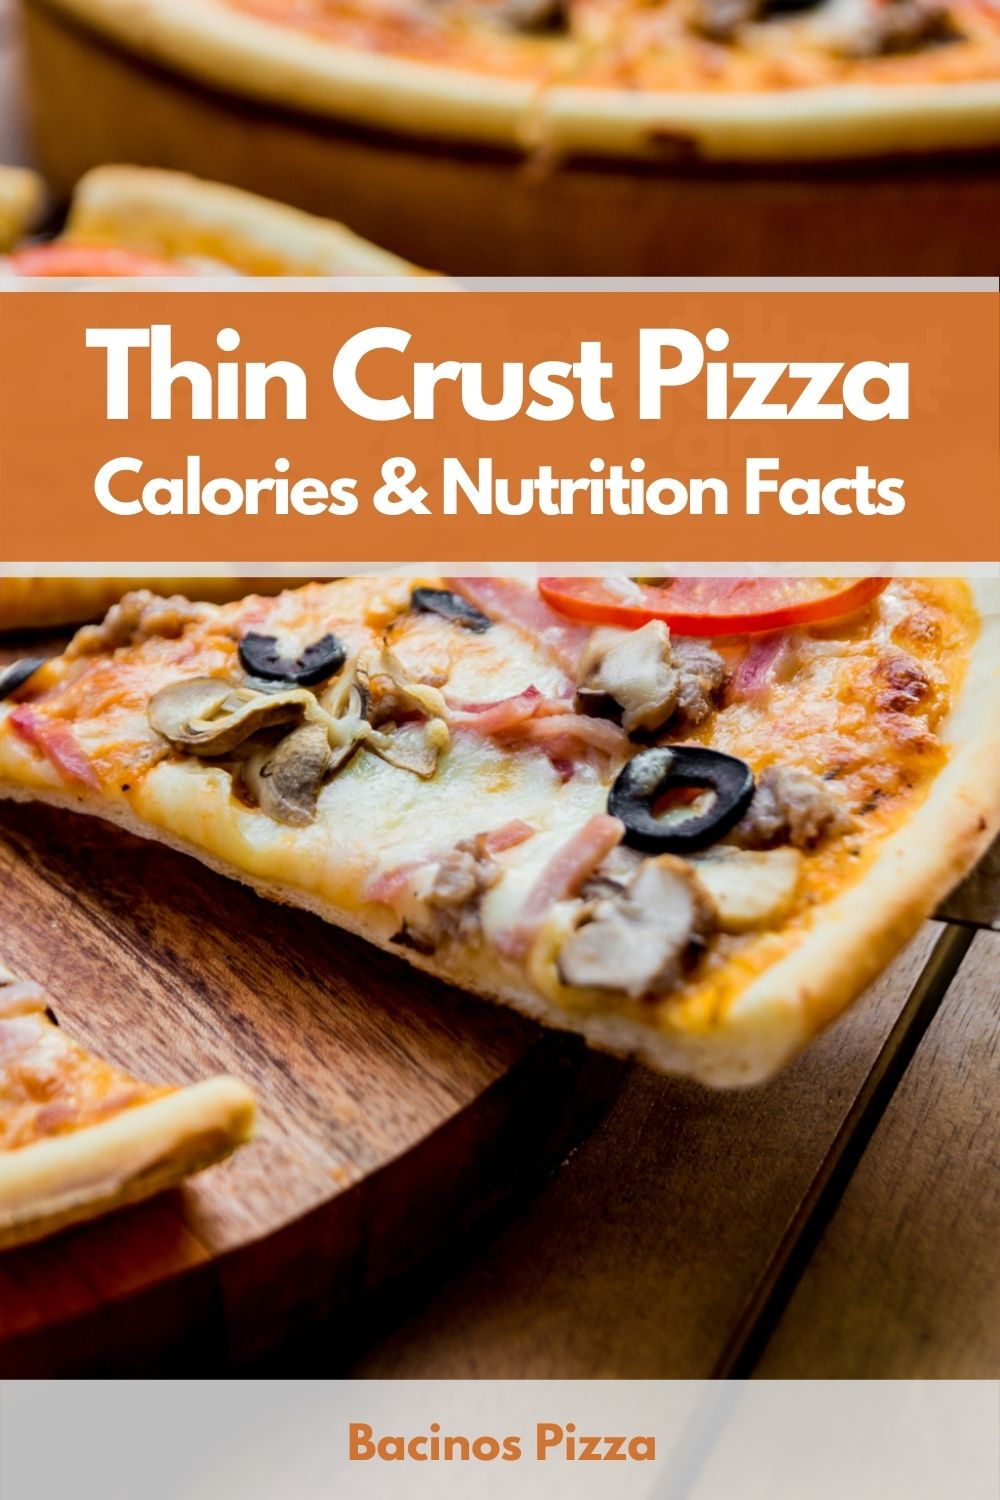 Thin Crust Pizza Calories & Nutrition Facts pin